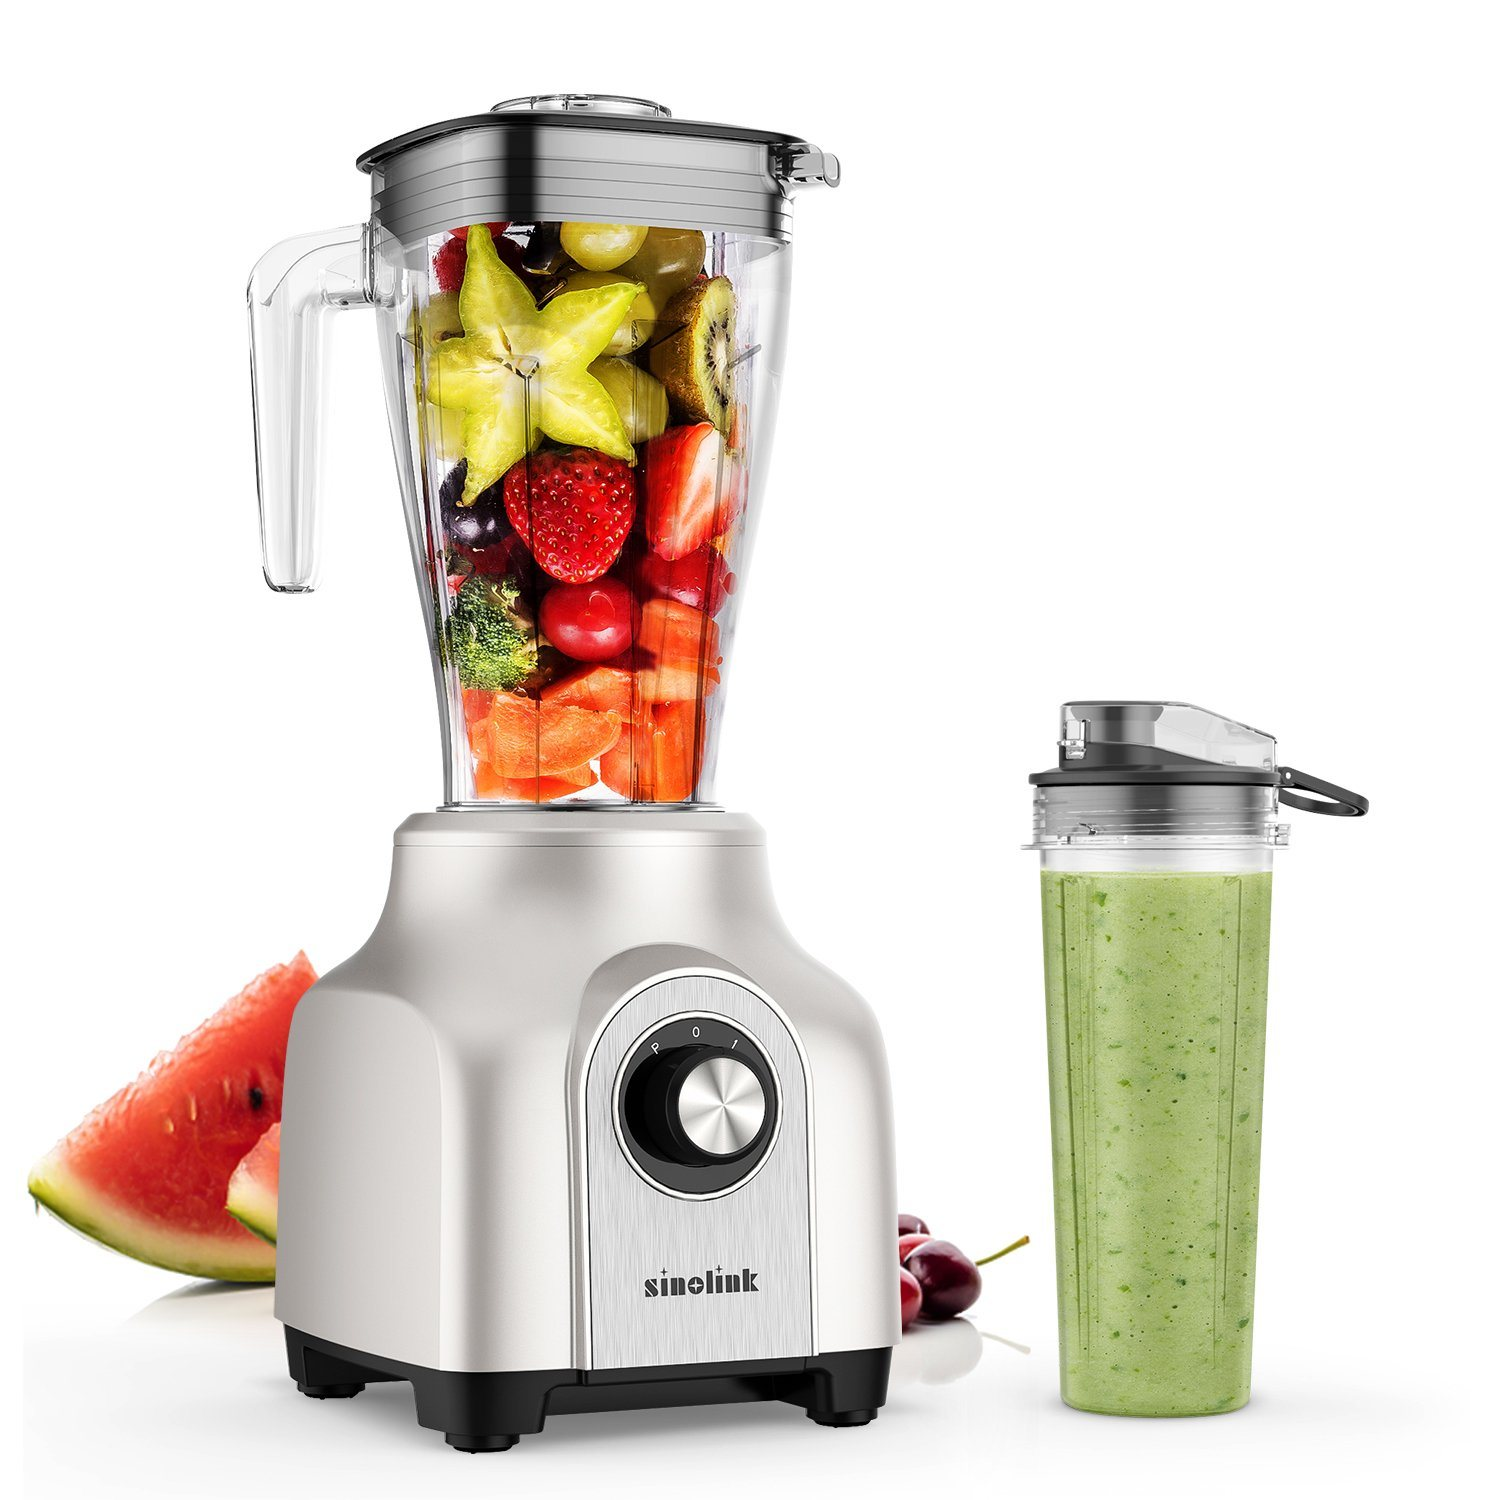 2020 New Smoothie Blender with 1.5L Pitcher and Portable Bottle